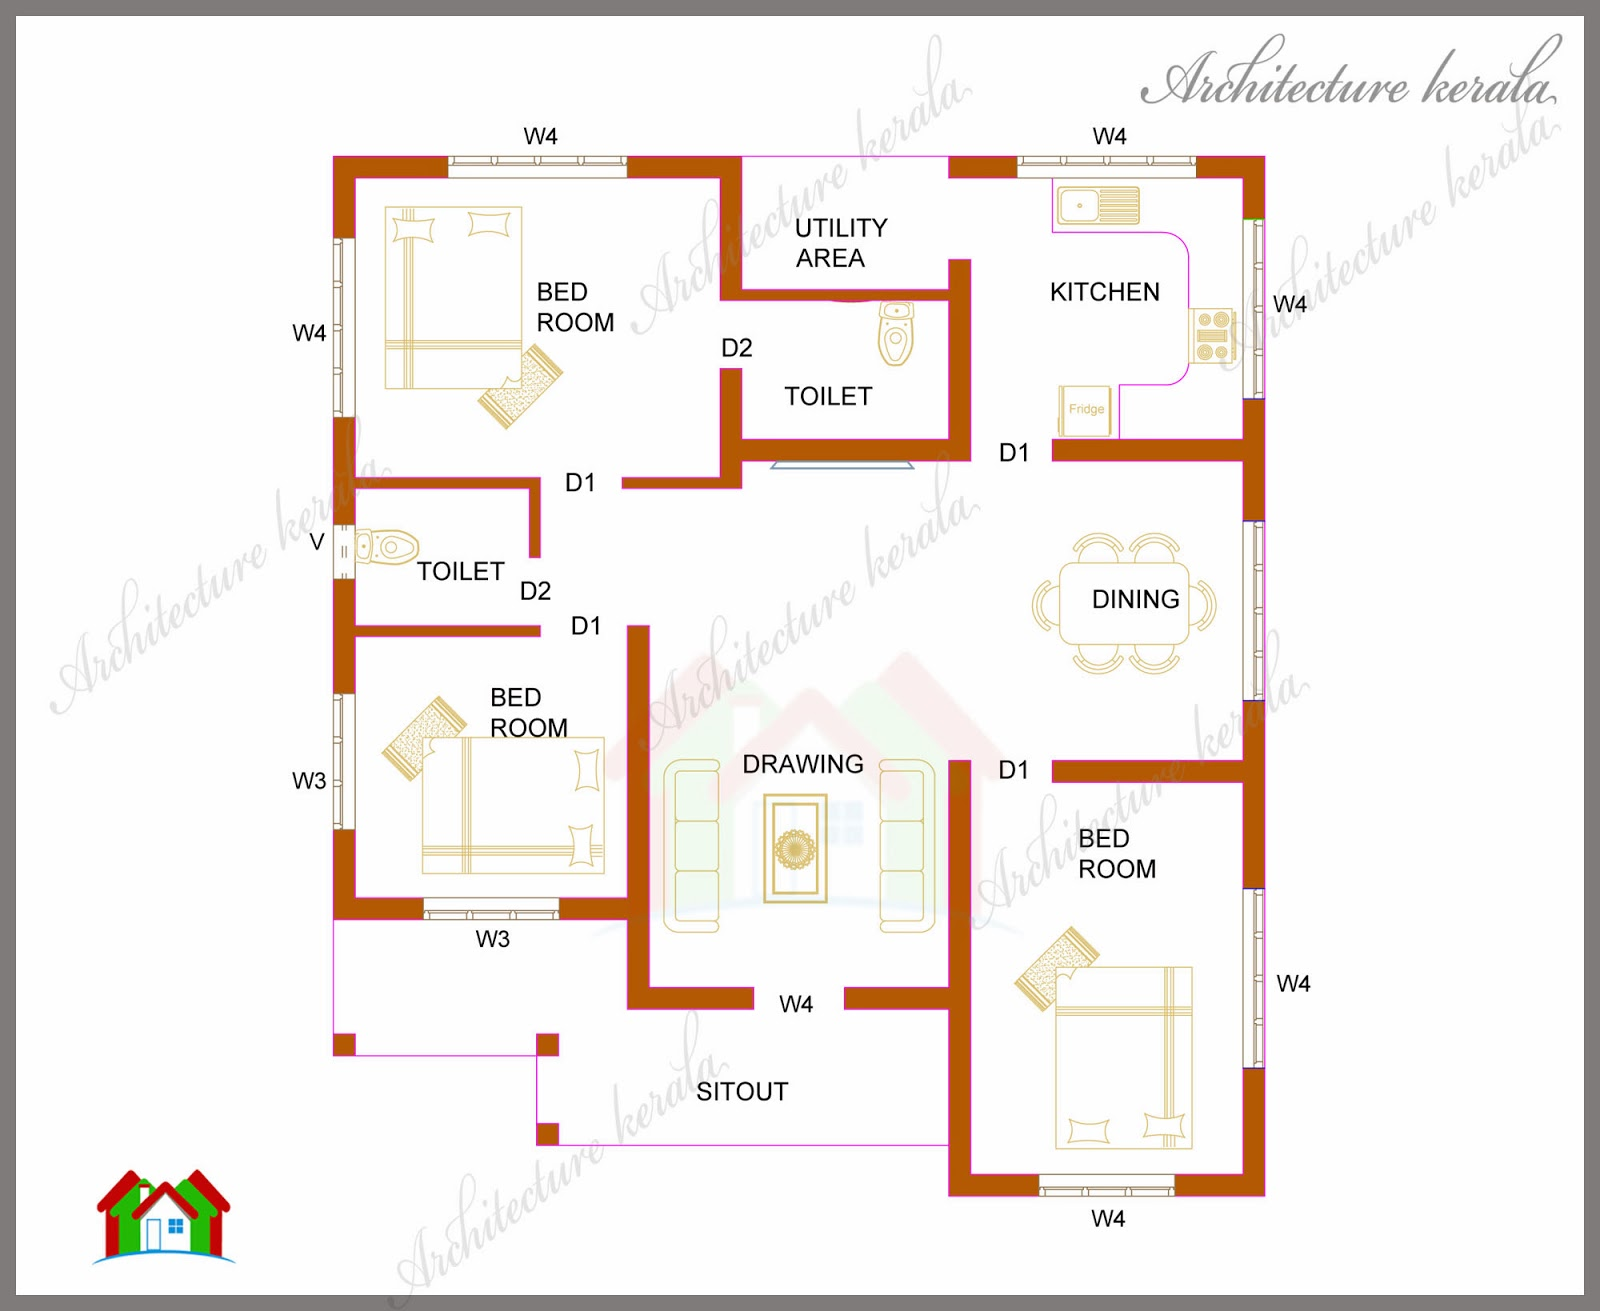 Three bedrooms in 1200 square feet kerala house plan for 3 bedroom low cost house plans